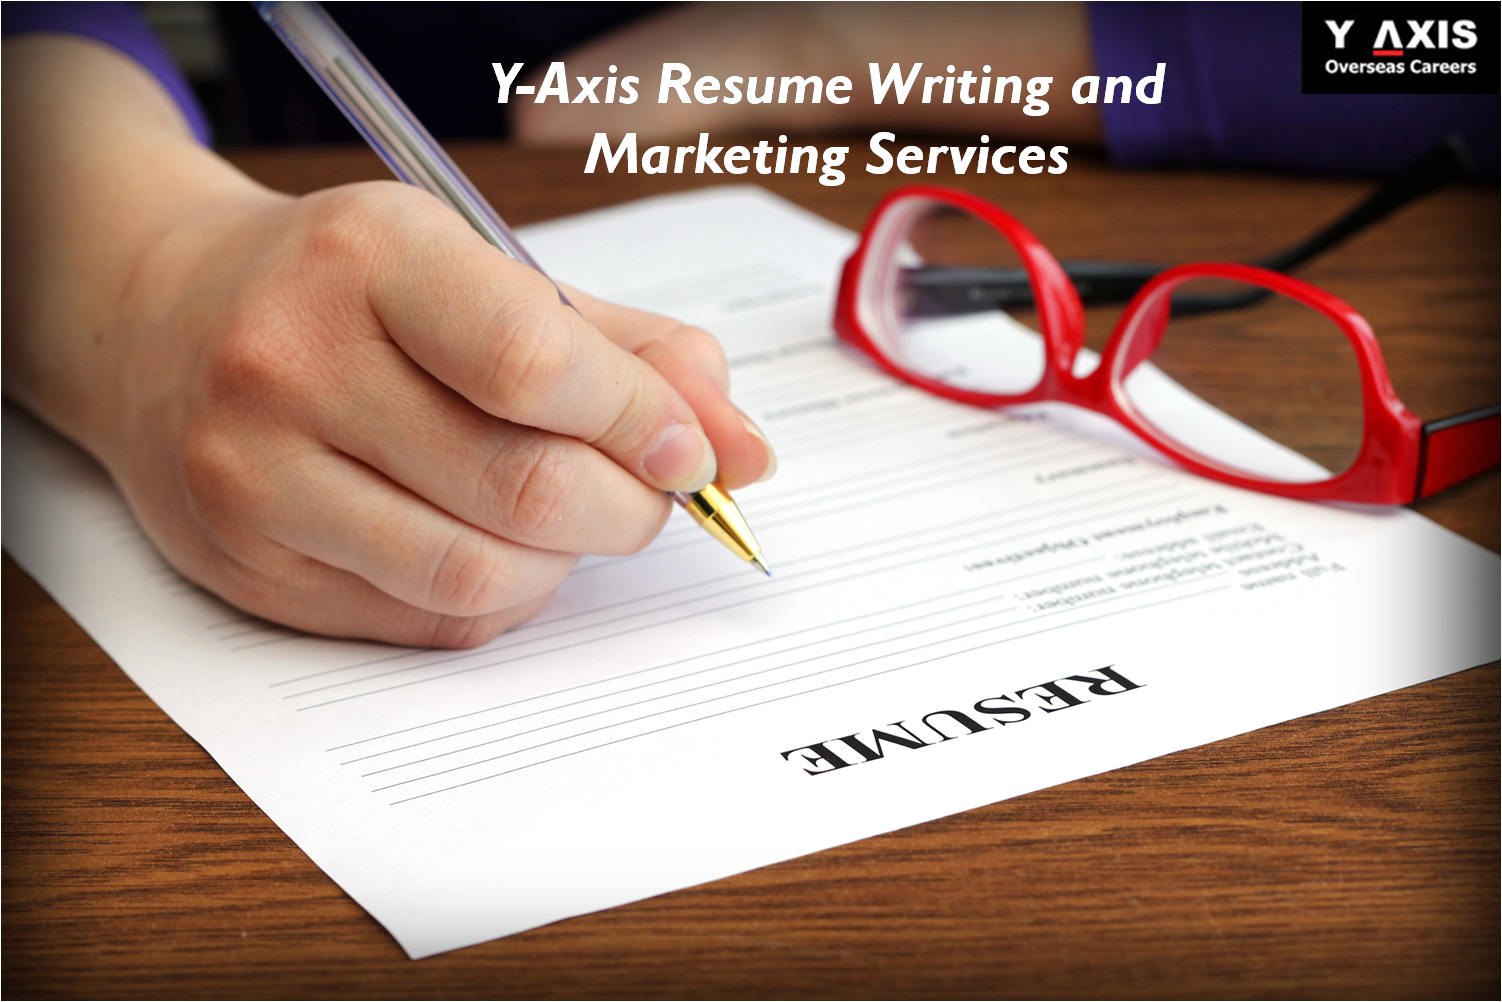 y axis reviews y axis resume and marketing services